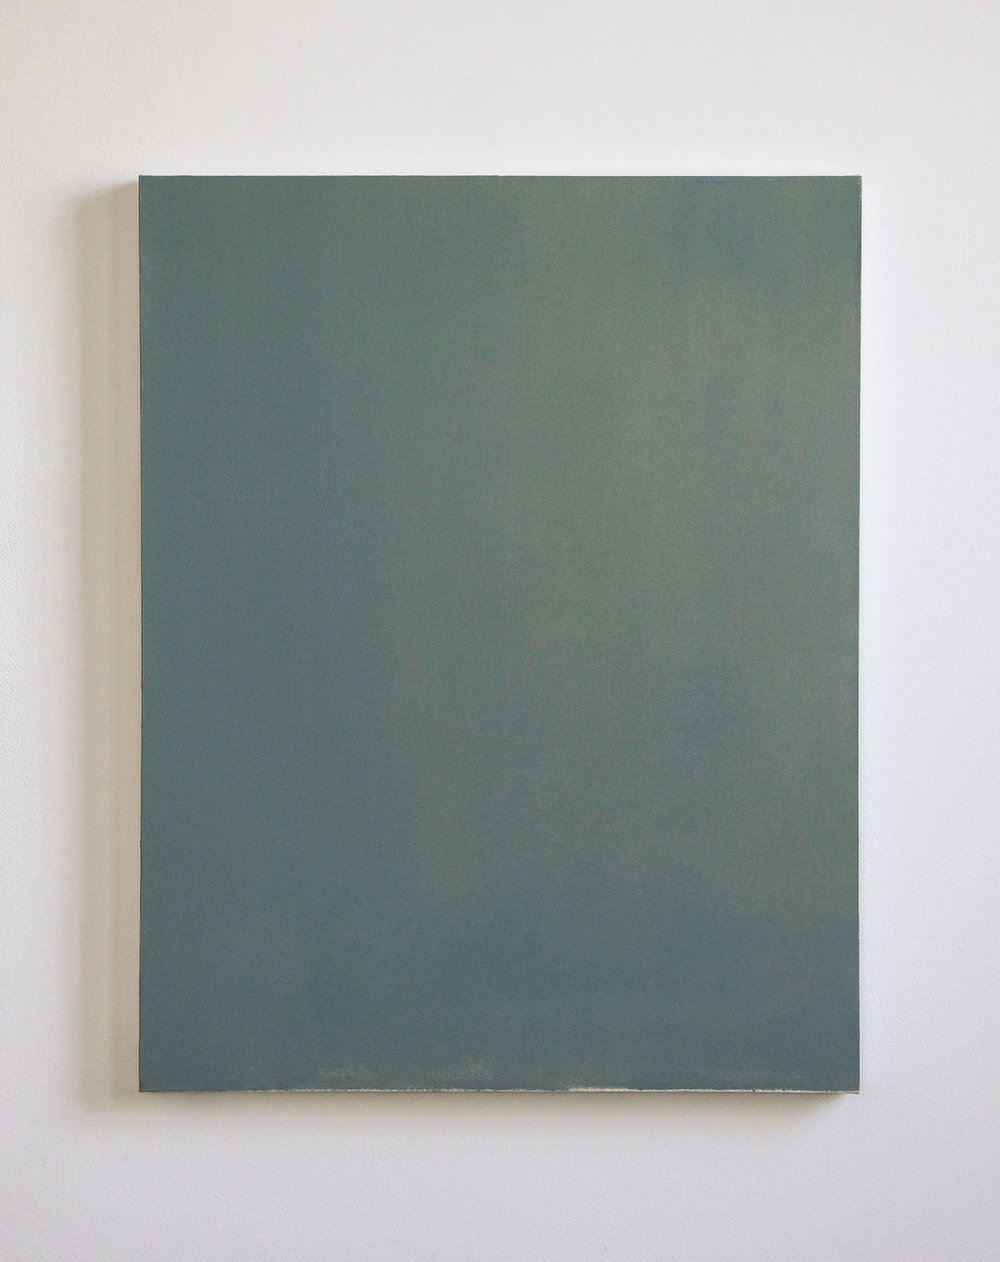 Untitled (Silent), 36%22x28%22, oil on canvas2016 .jpg